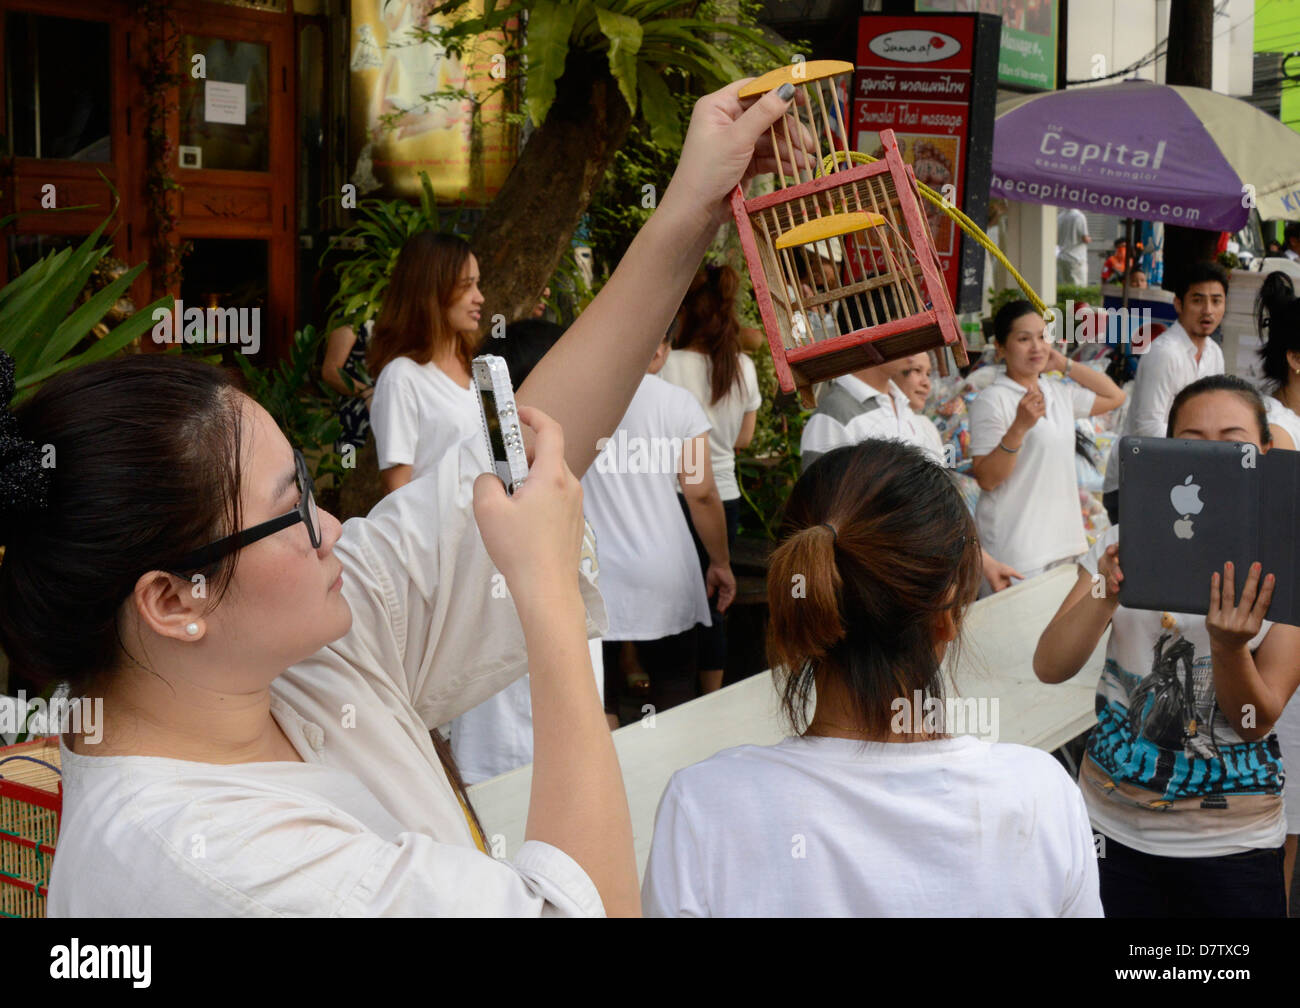 Releasing of birds to gain merit, another facebook opportunity, Bangkok, Thailand, Southeast Asia - Stock Image